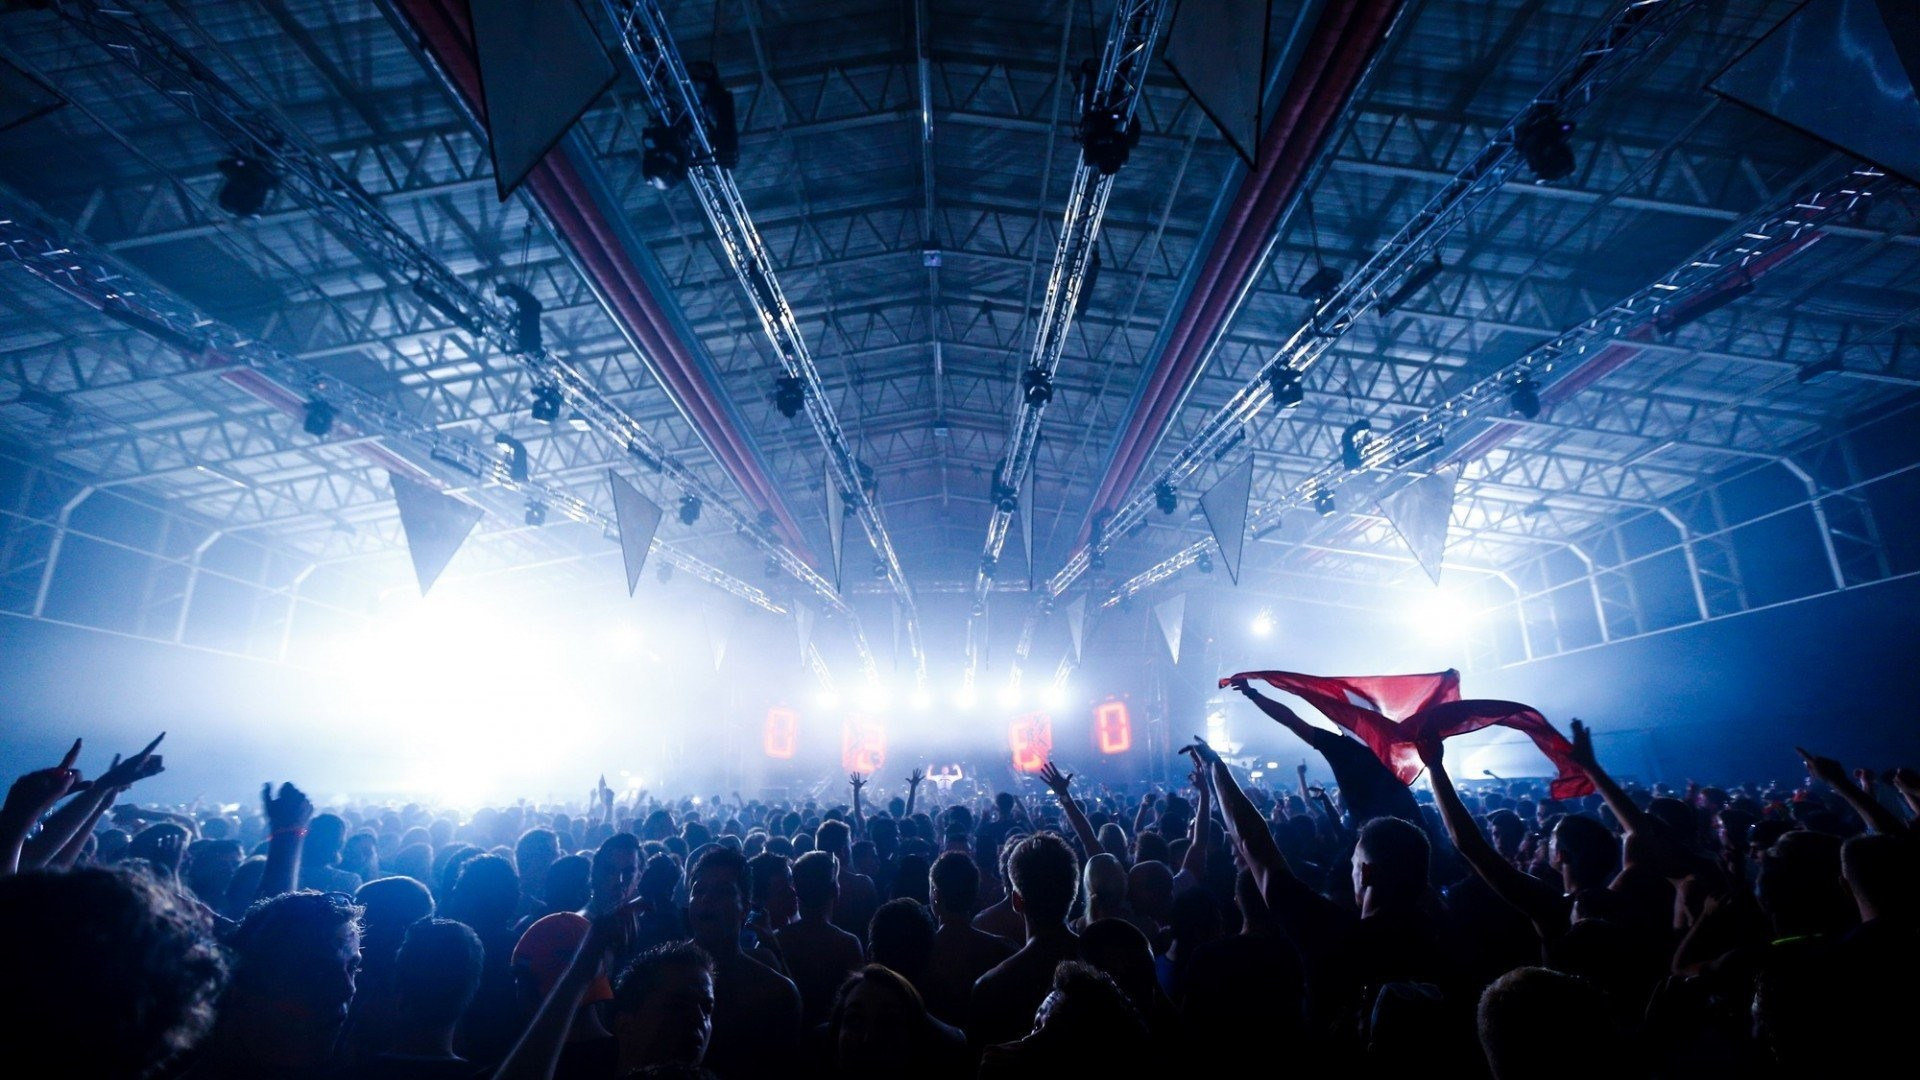 rave wallpapers hd 72 images